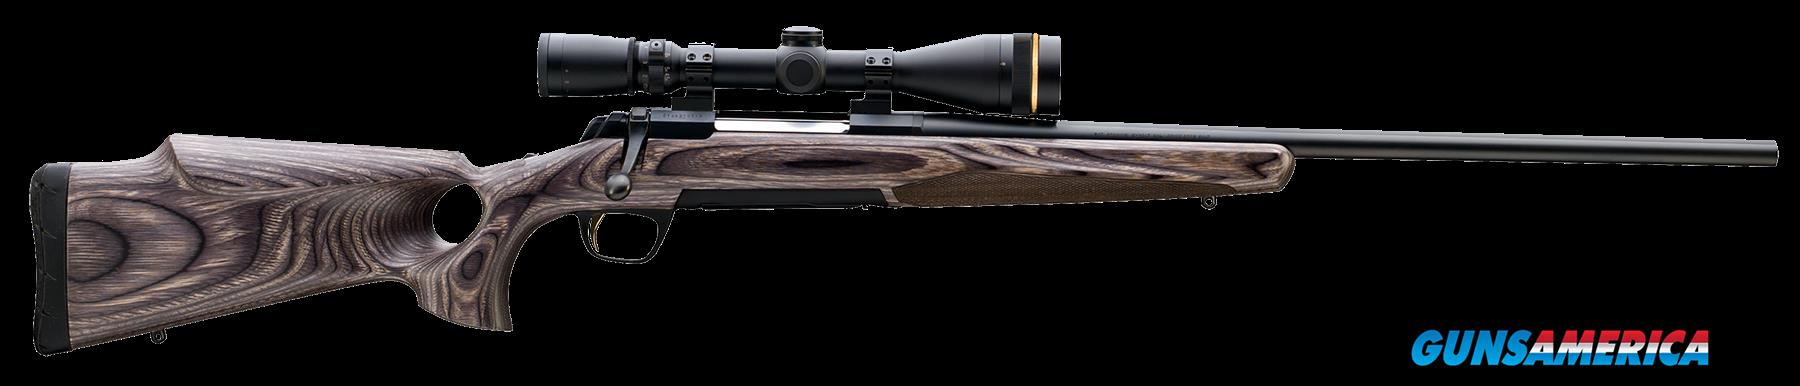 "Browning 035299211 X-Bolt Eclipse Hunter Bolt 243 Winchester 22"" 4+1 Laminate Wood Stock Blued  Guns > Rifles > Browning Rifles > Bolt Action"